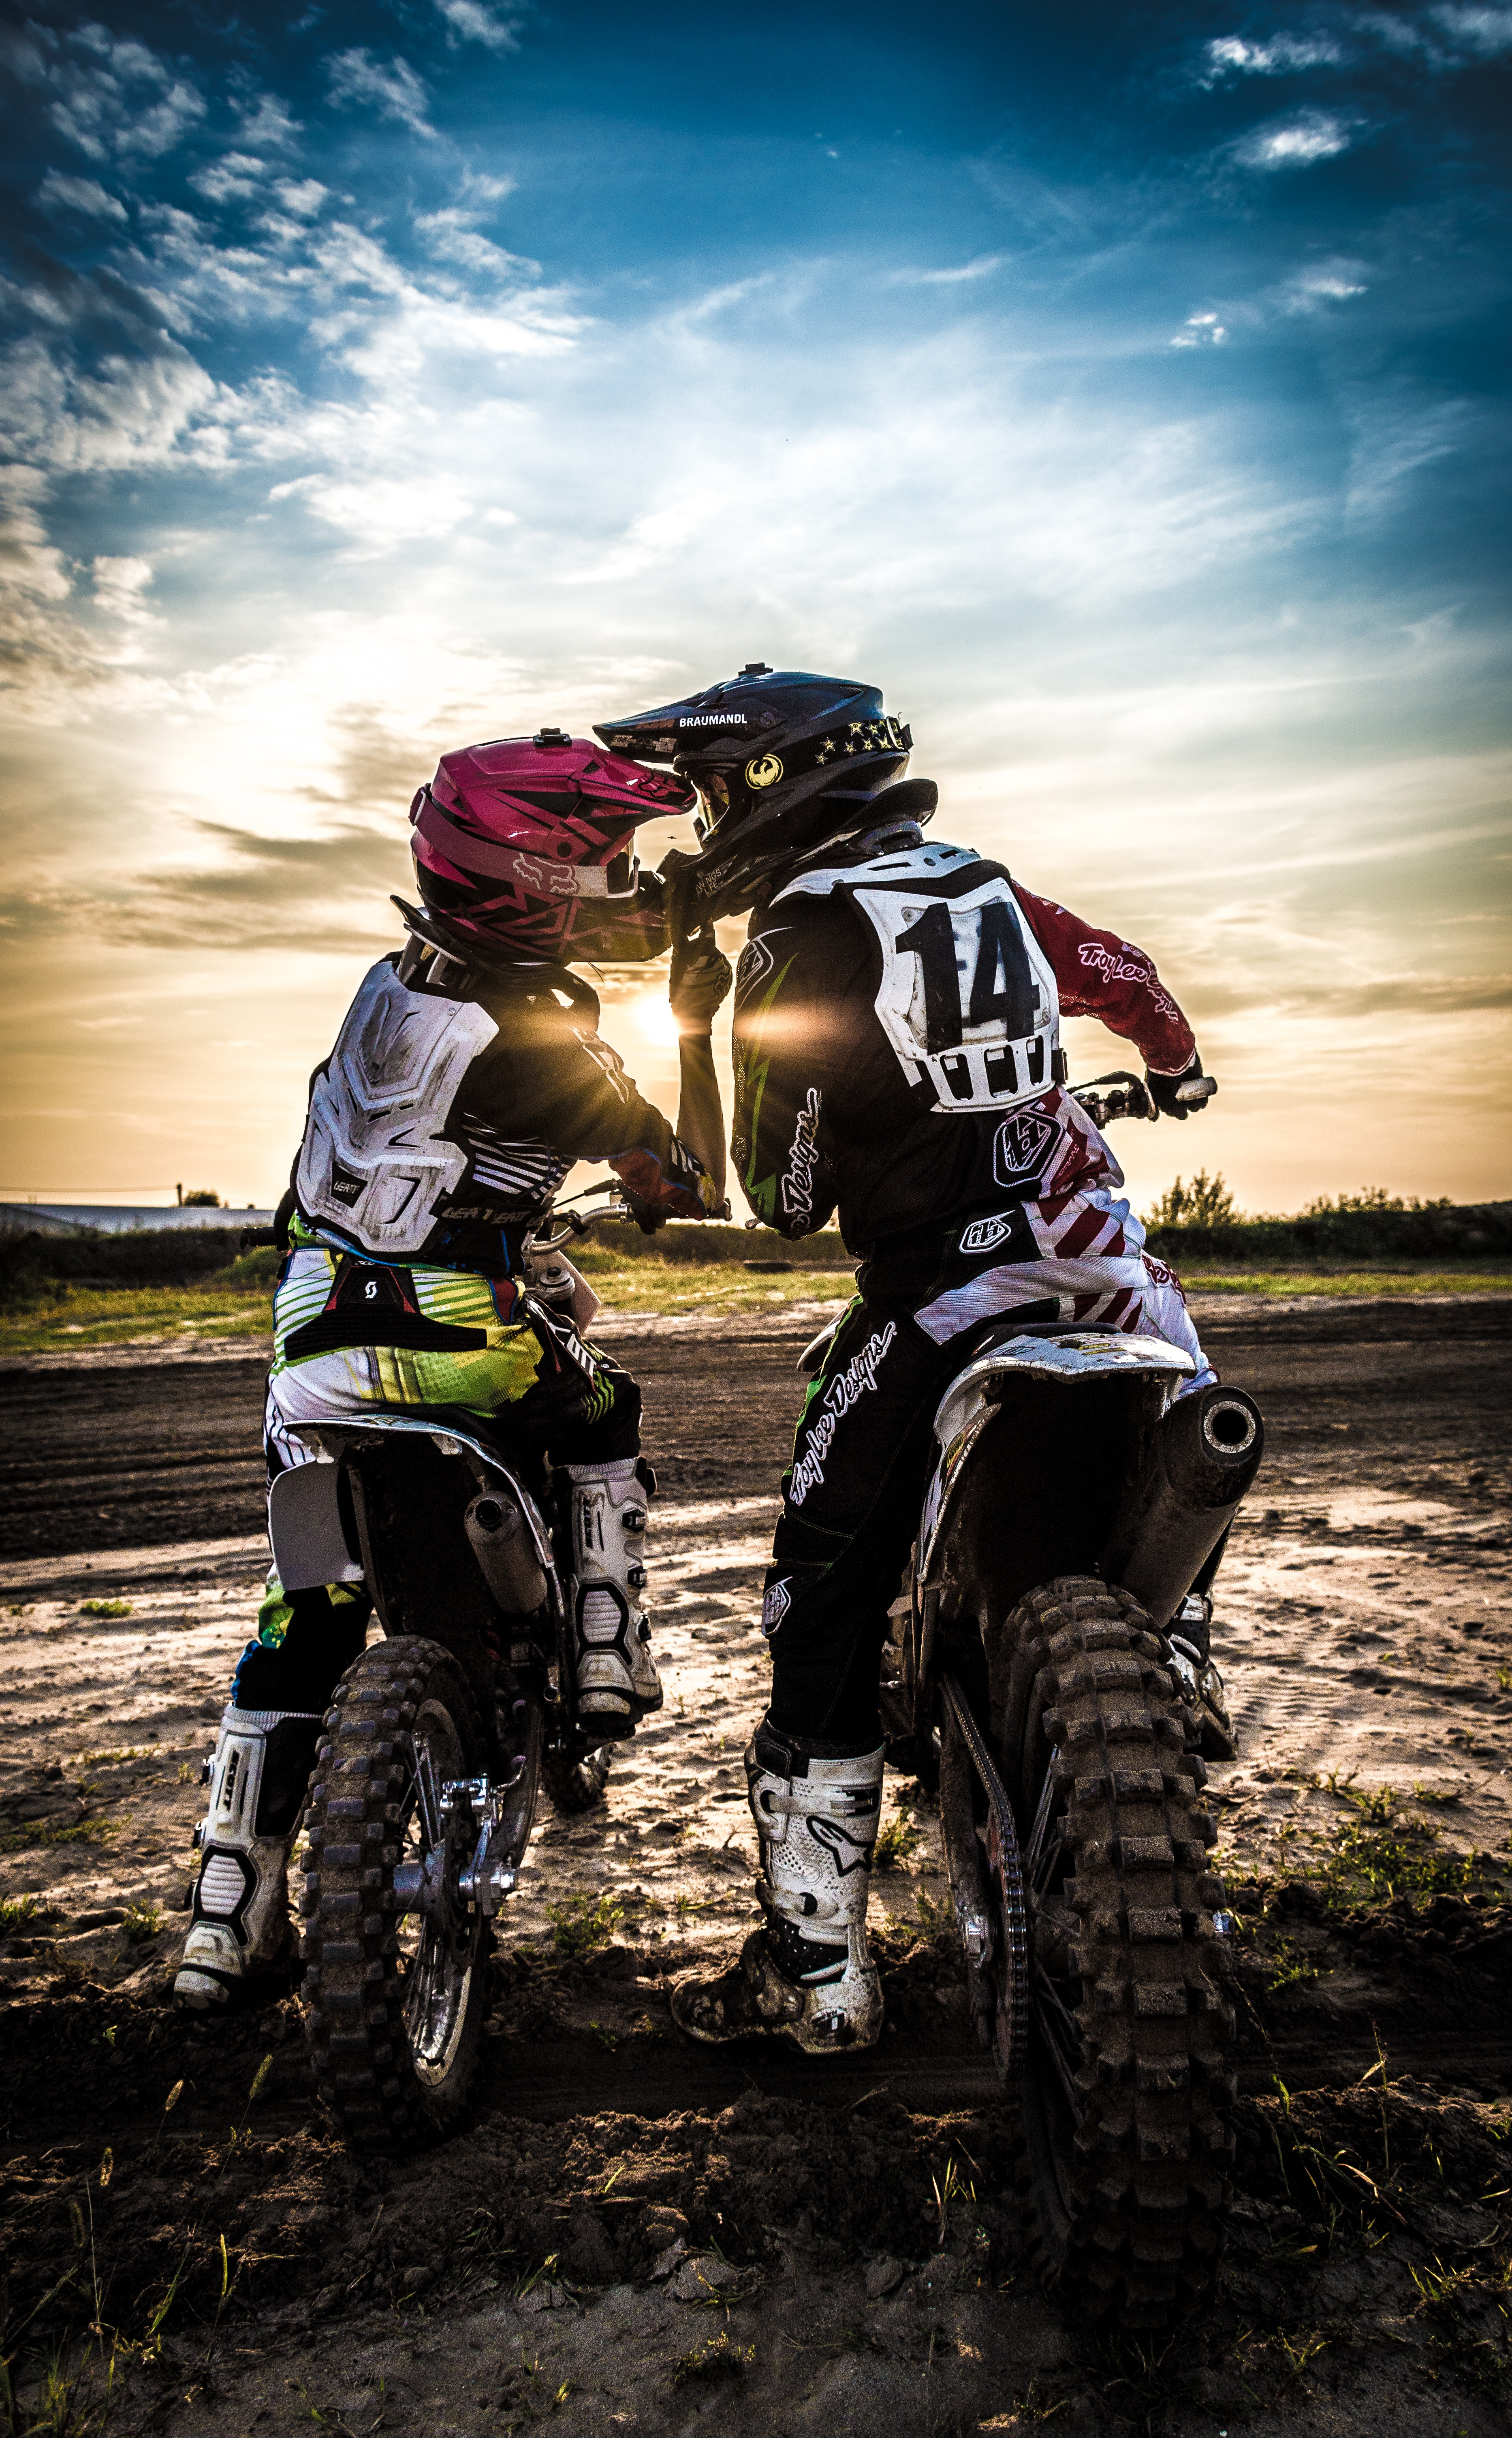 131034 download wallpaper Motorcycles, Motocross, Kiss, Love, Moto, Sports, Sunset screensavers and pictures for free